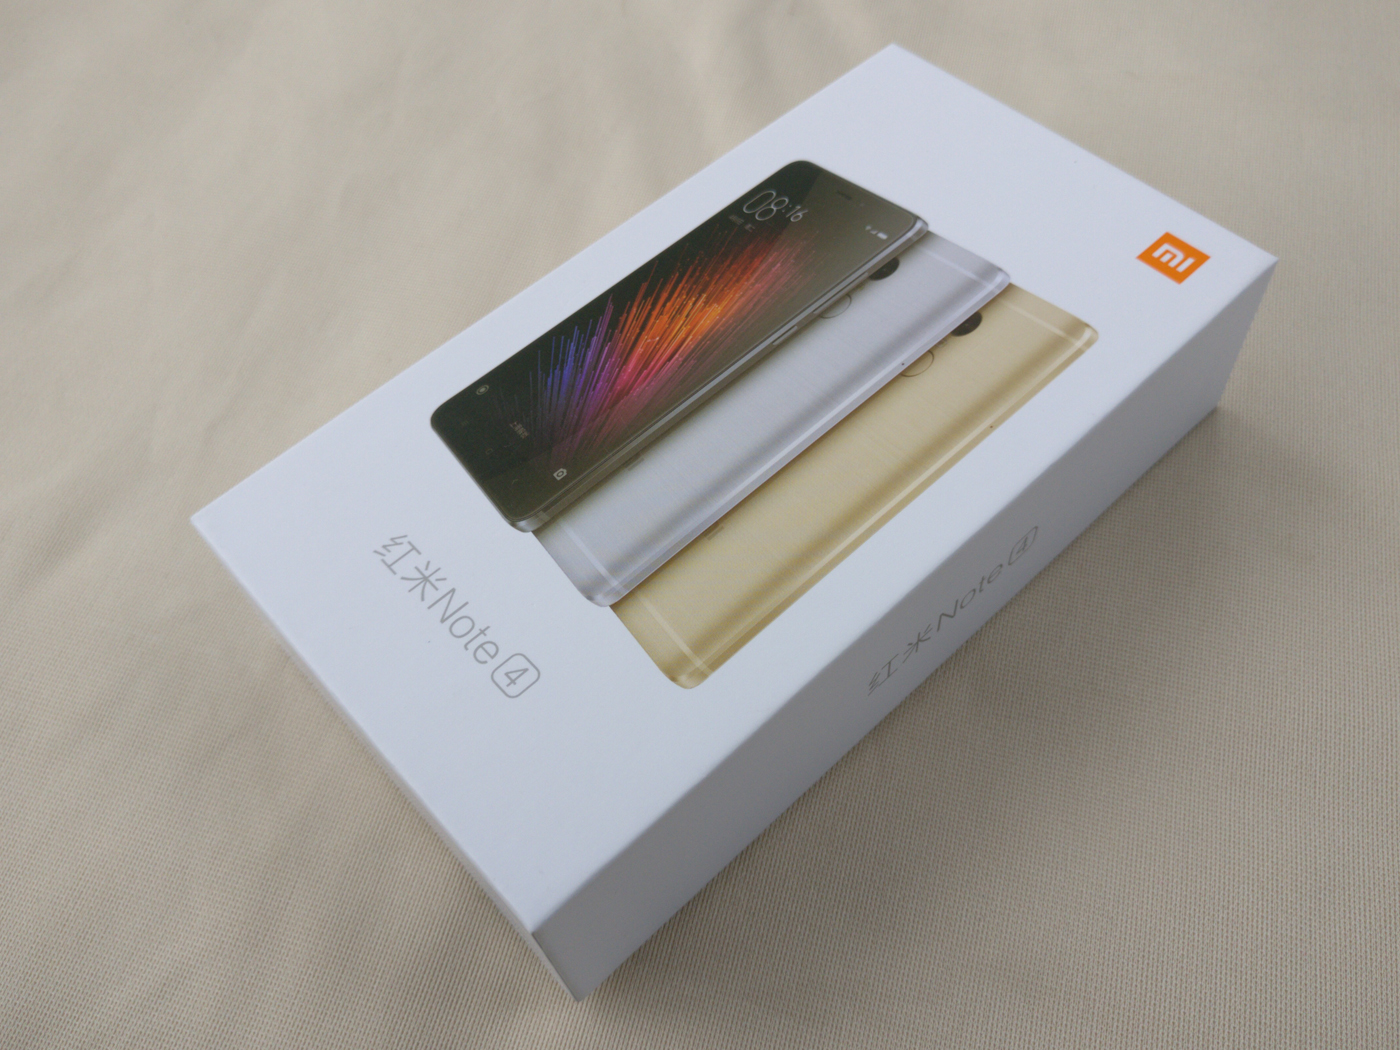 Pubg Hd Redmi Note 4: To2c.com Blog: Redmi Note4 Real Life Images , Unboxing